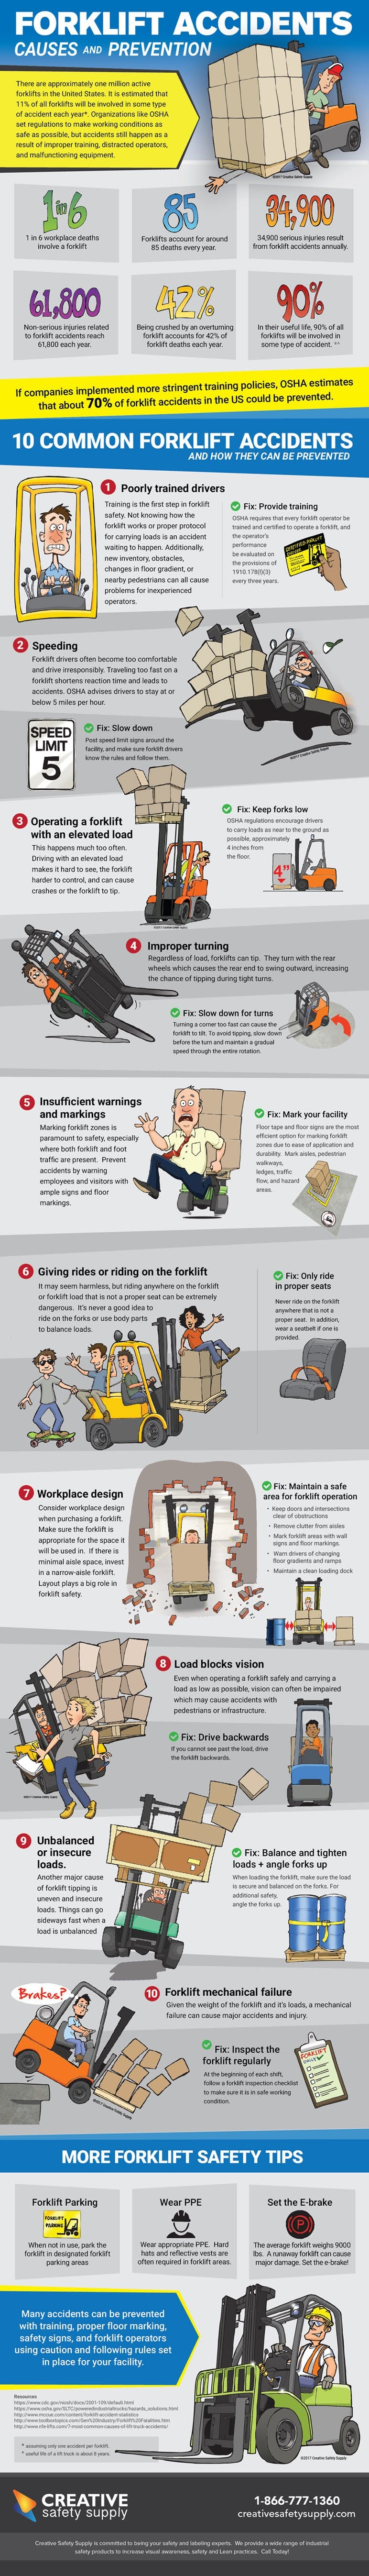 forklift-accidents-causes-and-prevention-infographic